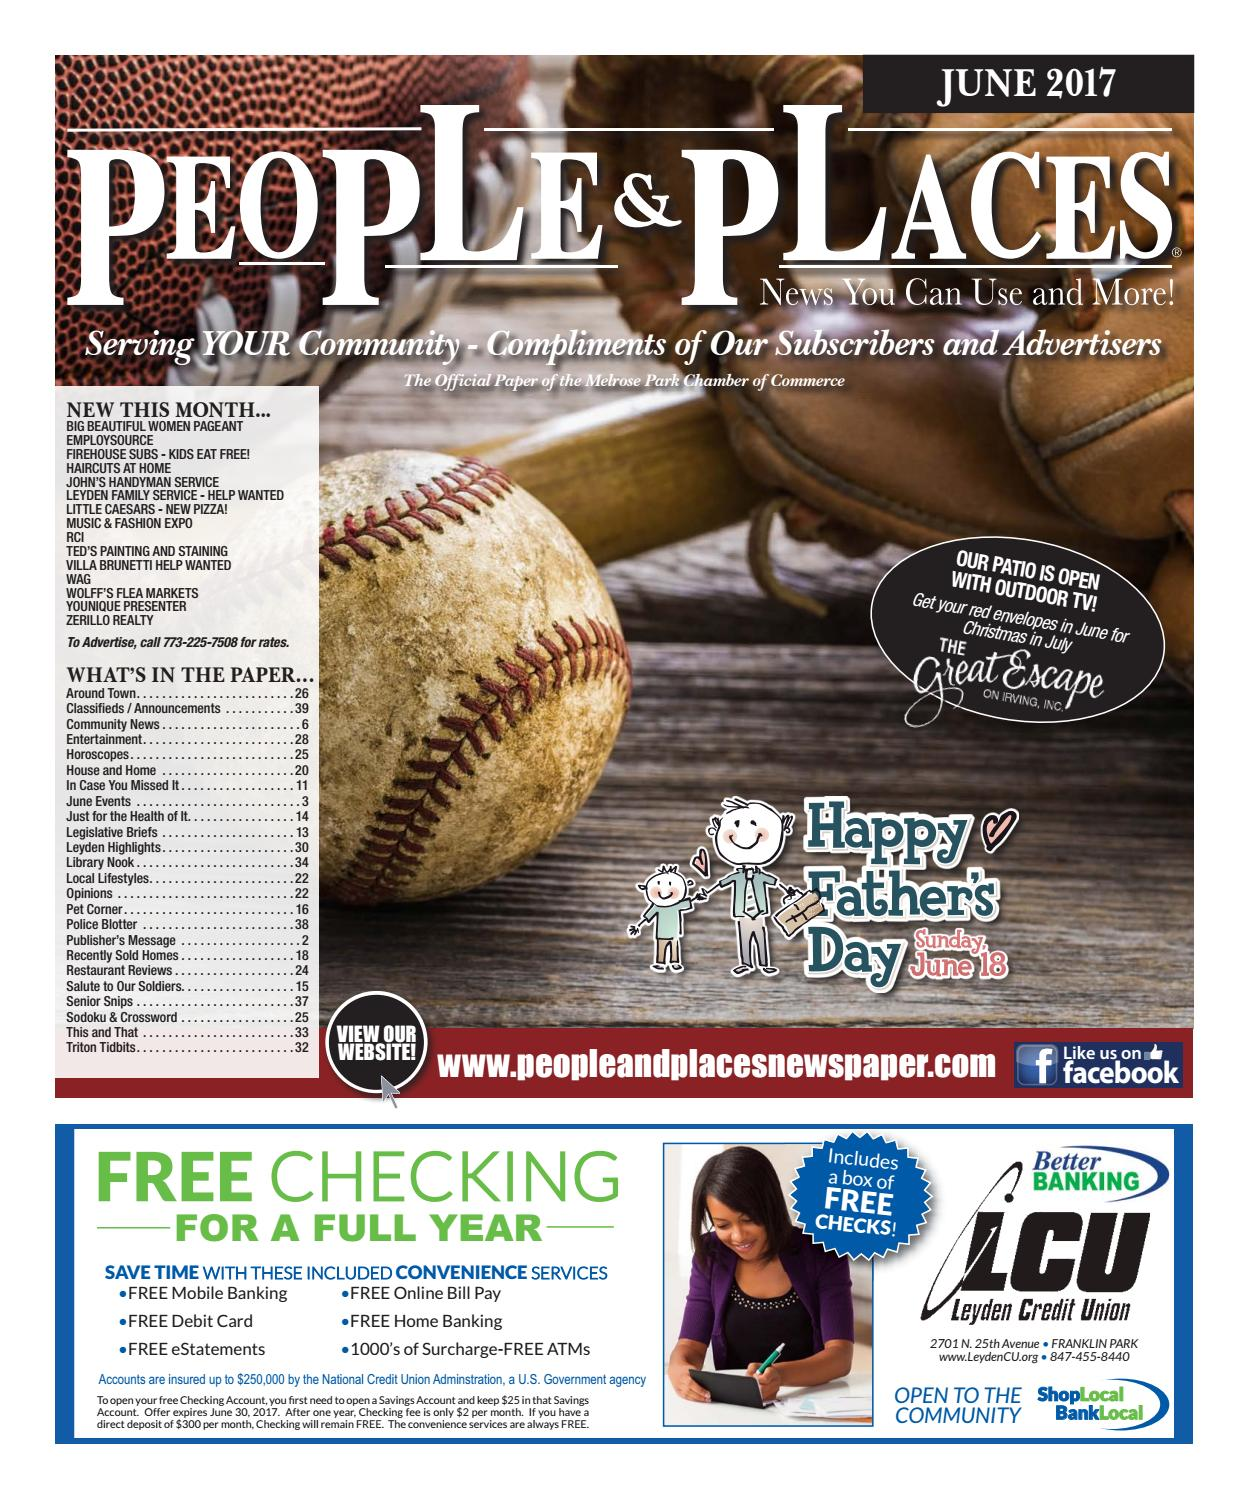 June 2017 People Places Newspaper By Jennifer Creative